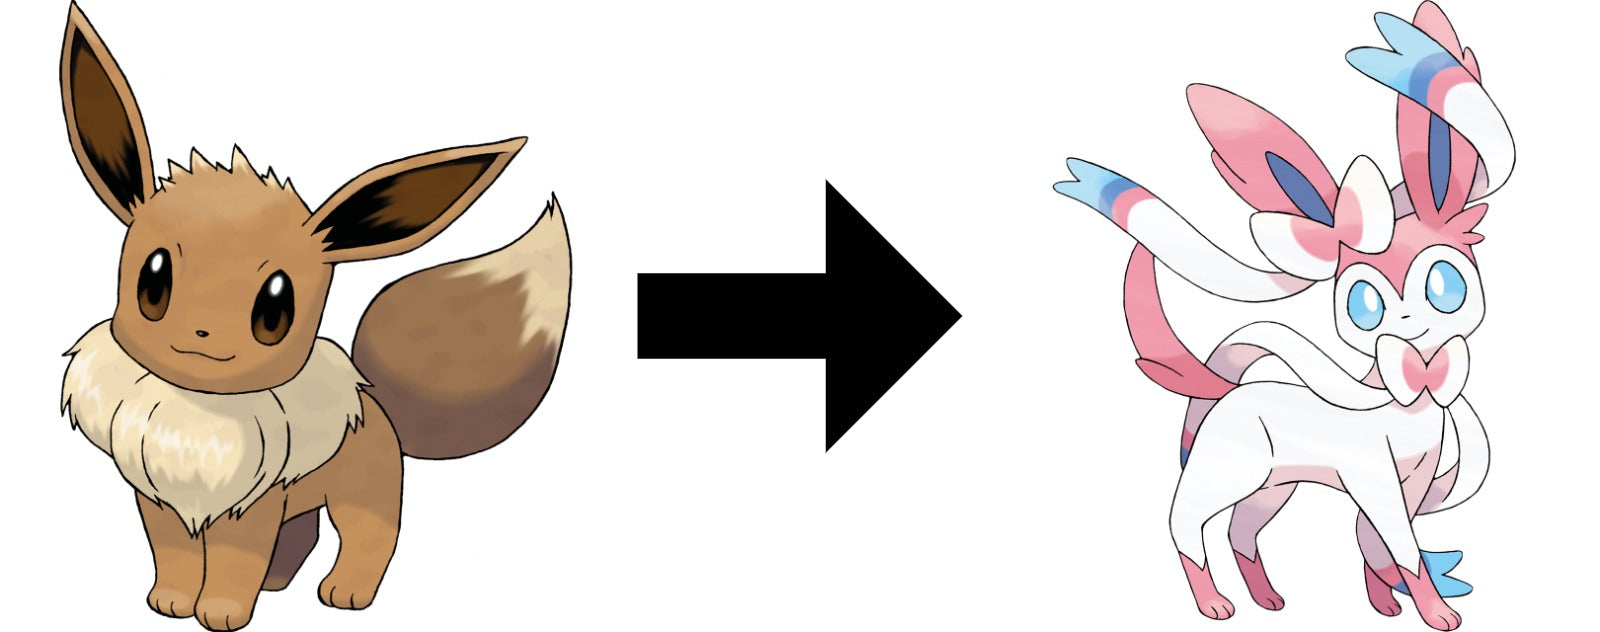 How to Evolve Eevee into Sylveon